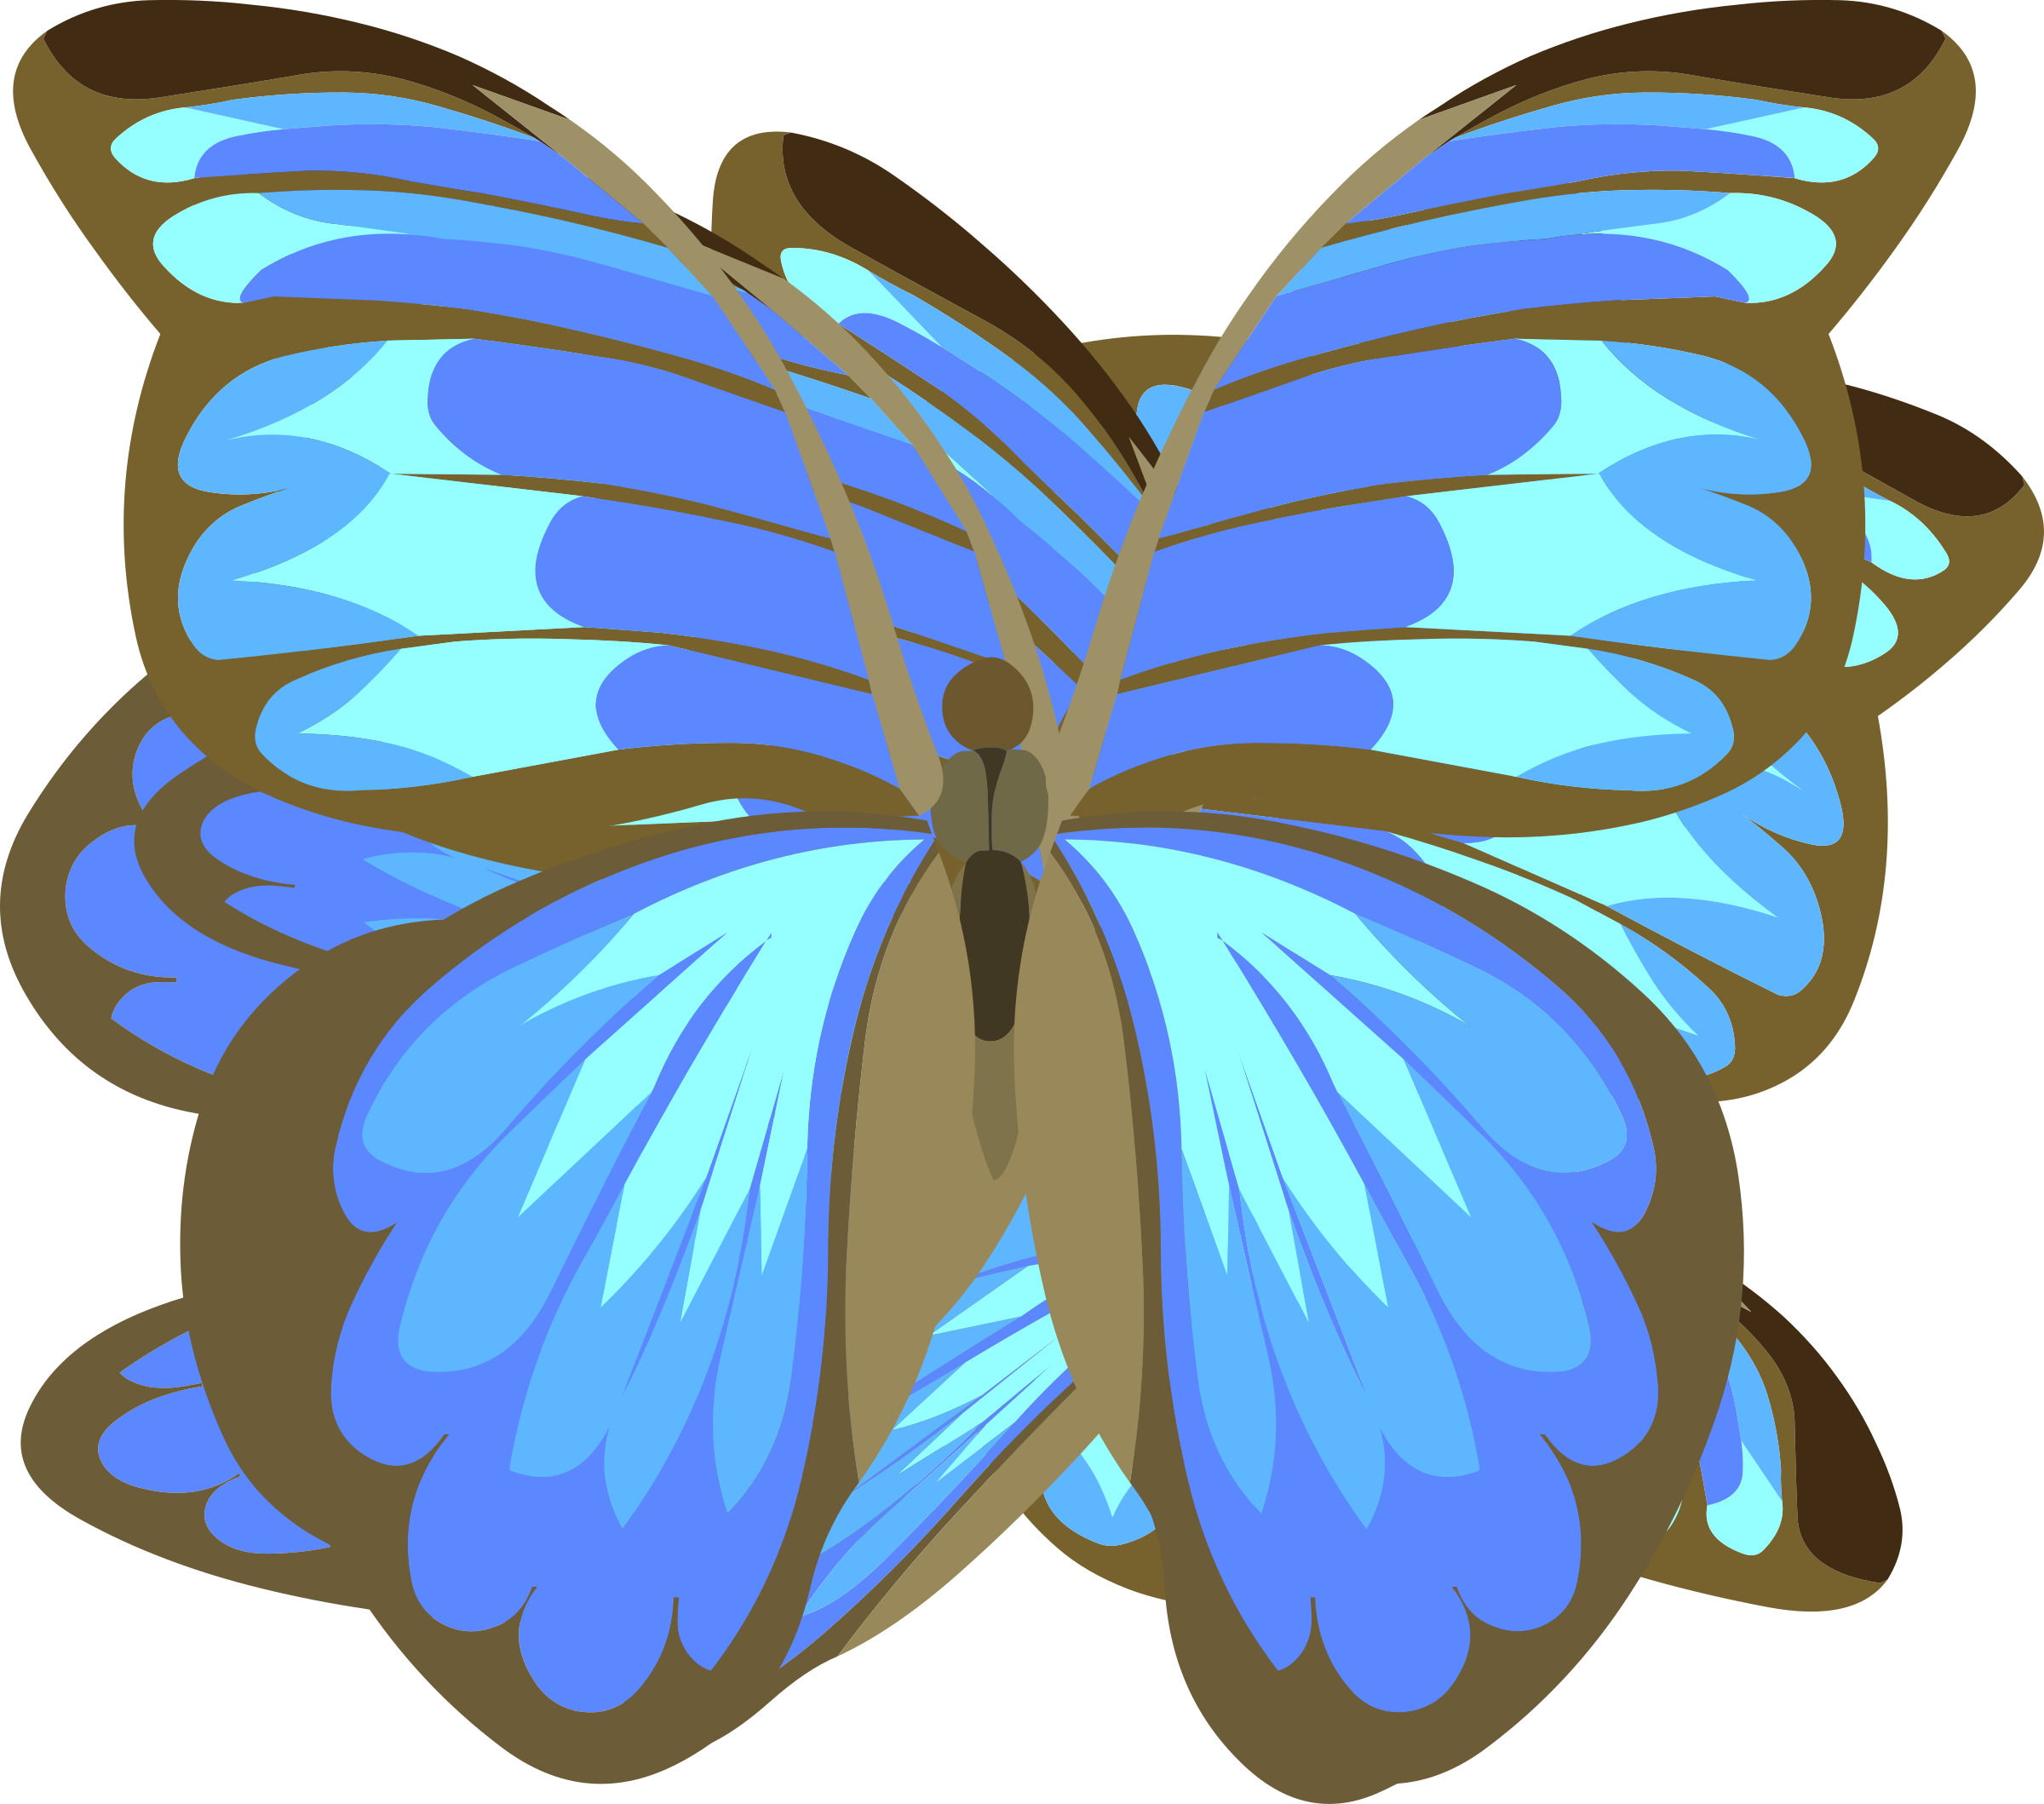 Glitch clipart butterfly Swoonerfly Misc Npc Swoonerfly Clipart